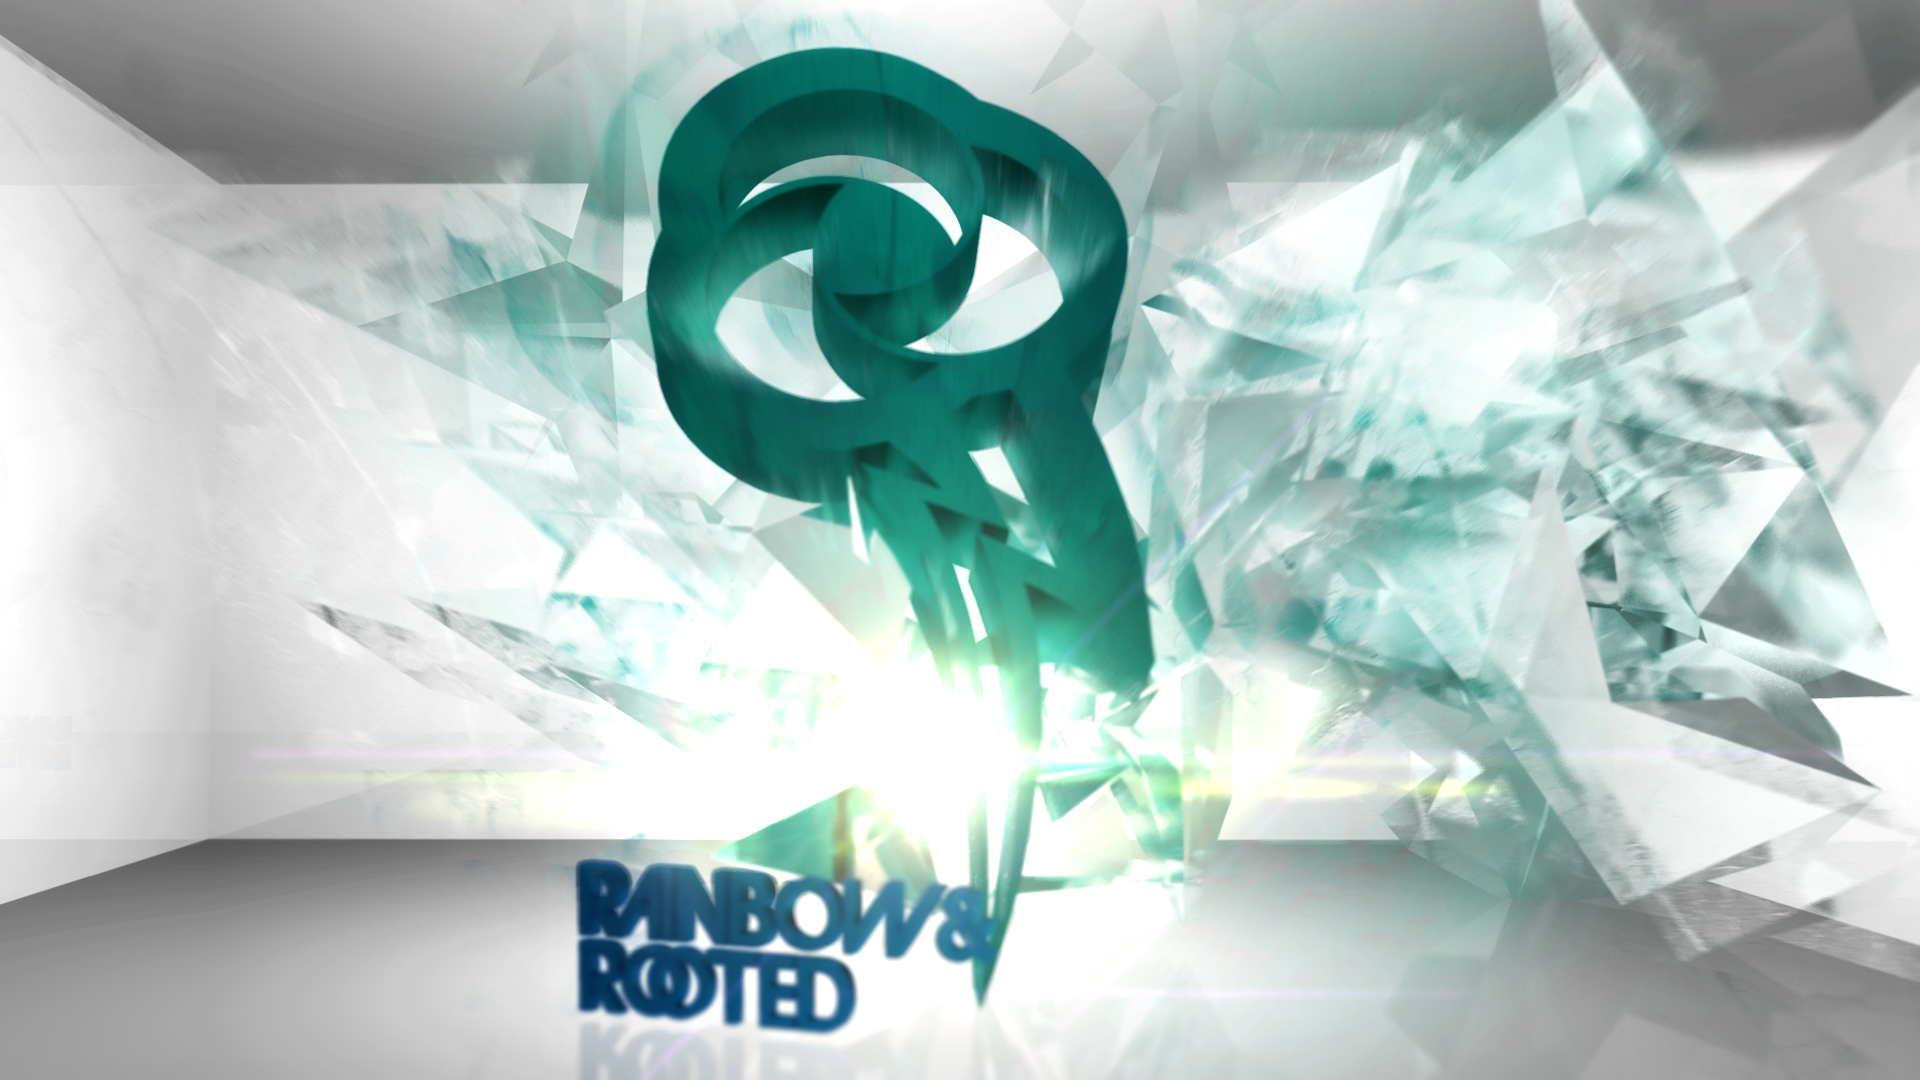 Get Rooted [1] by Finaglerific and WMill